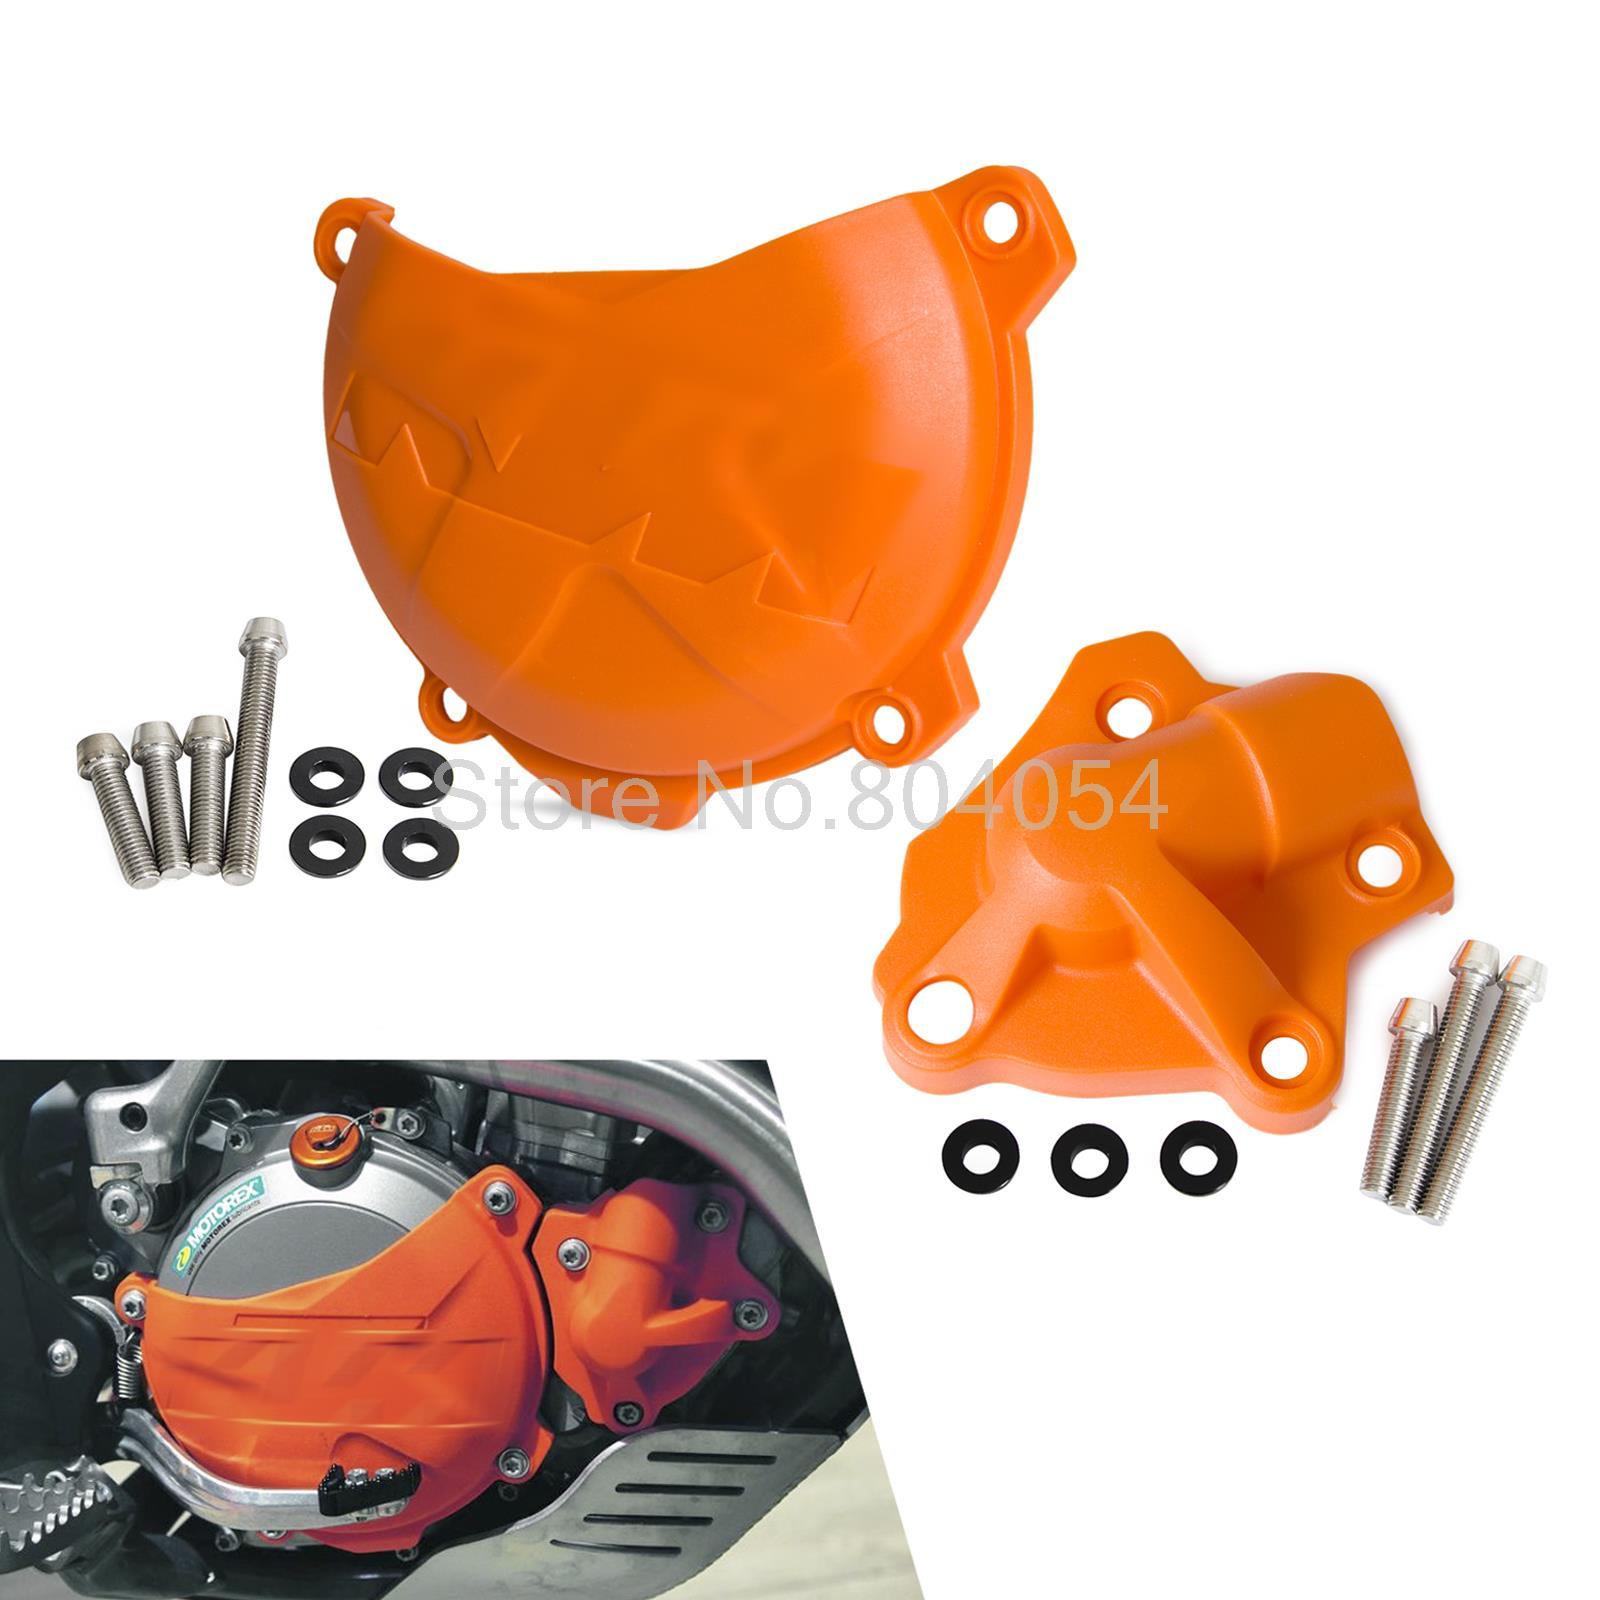 ФОТО Clutch Cover Protection Cover Water Pump Cover Protector for KTM 250 XCF-W 2014-2016